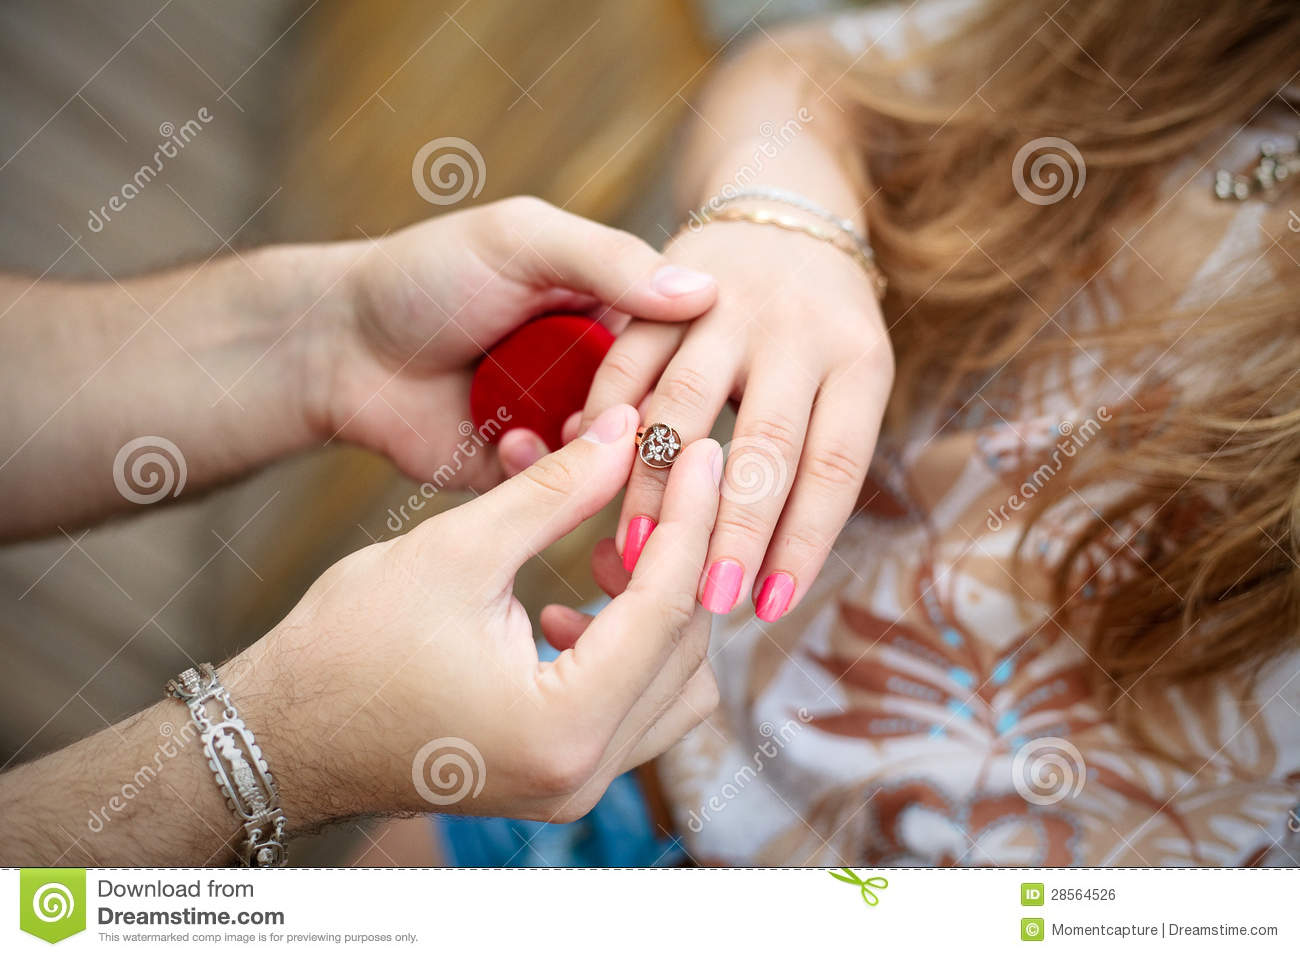 A Hand Of A Man Putting A Ring On The Girl\'s Finger Stock Photo ...